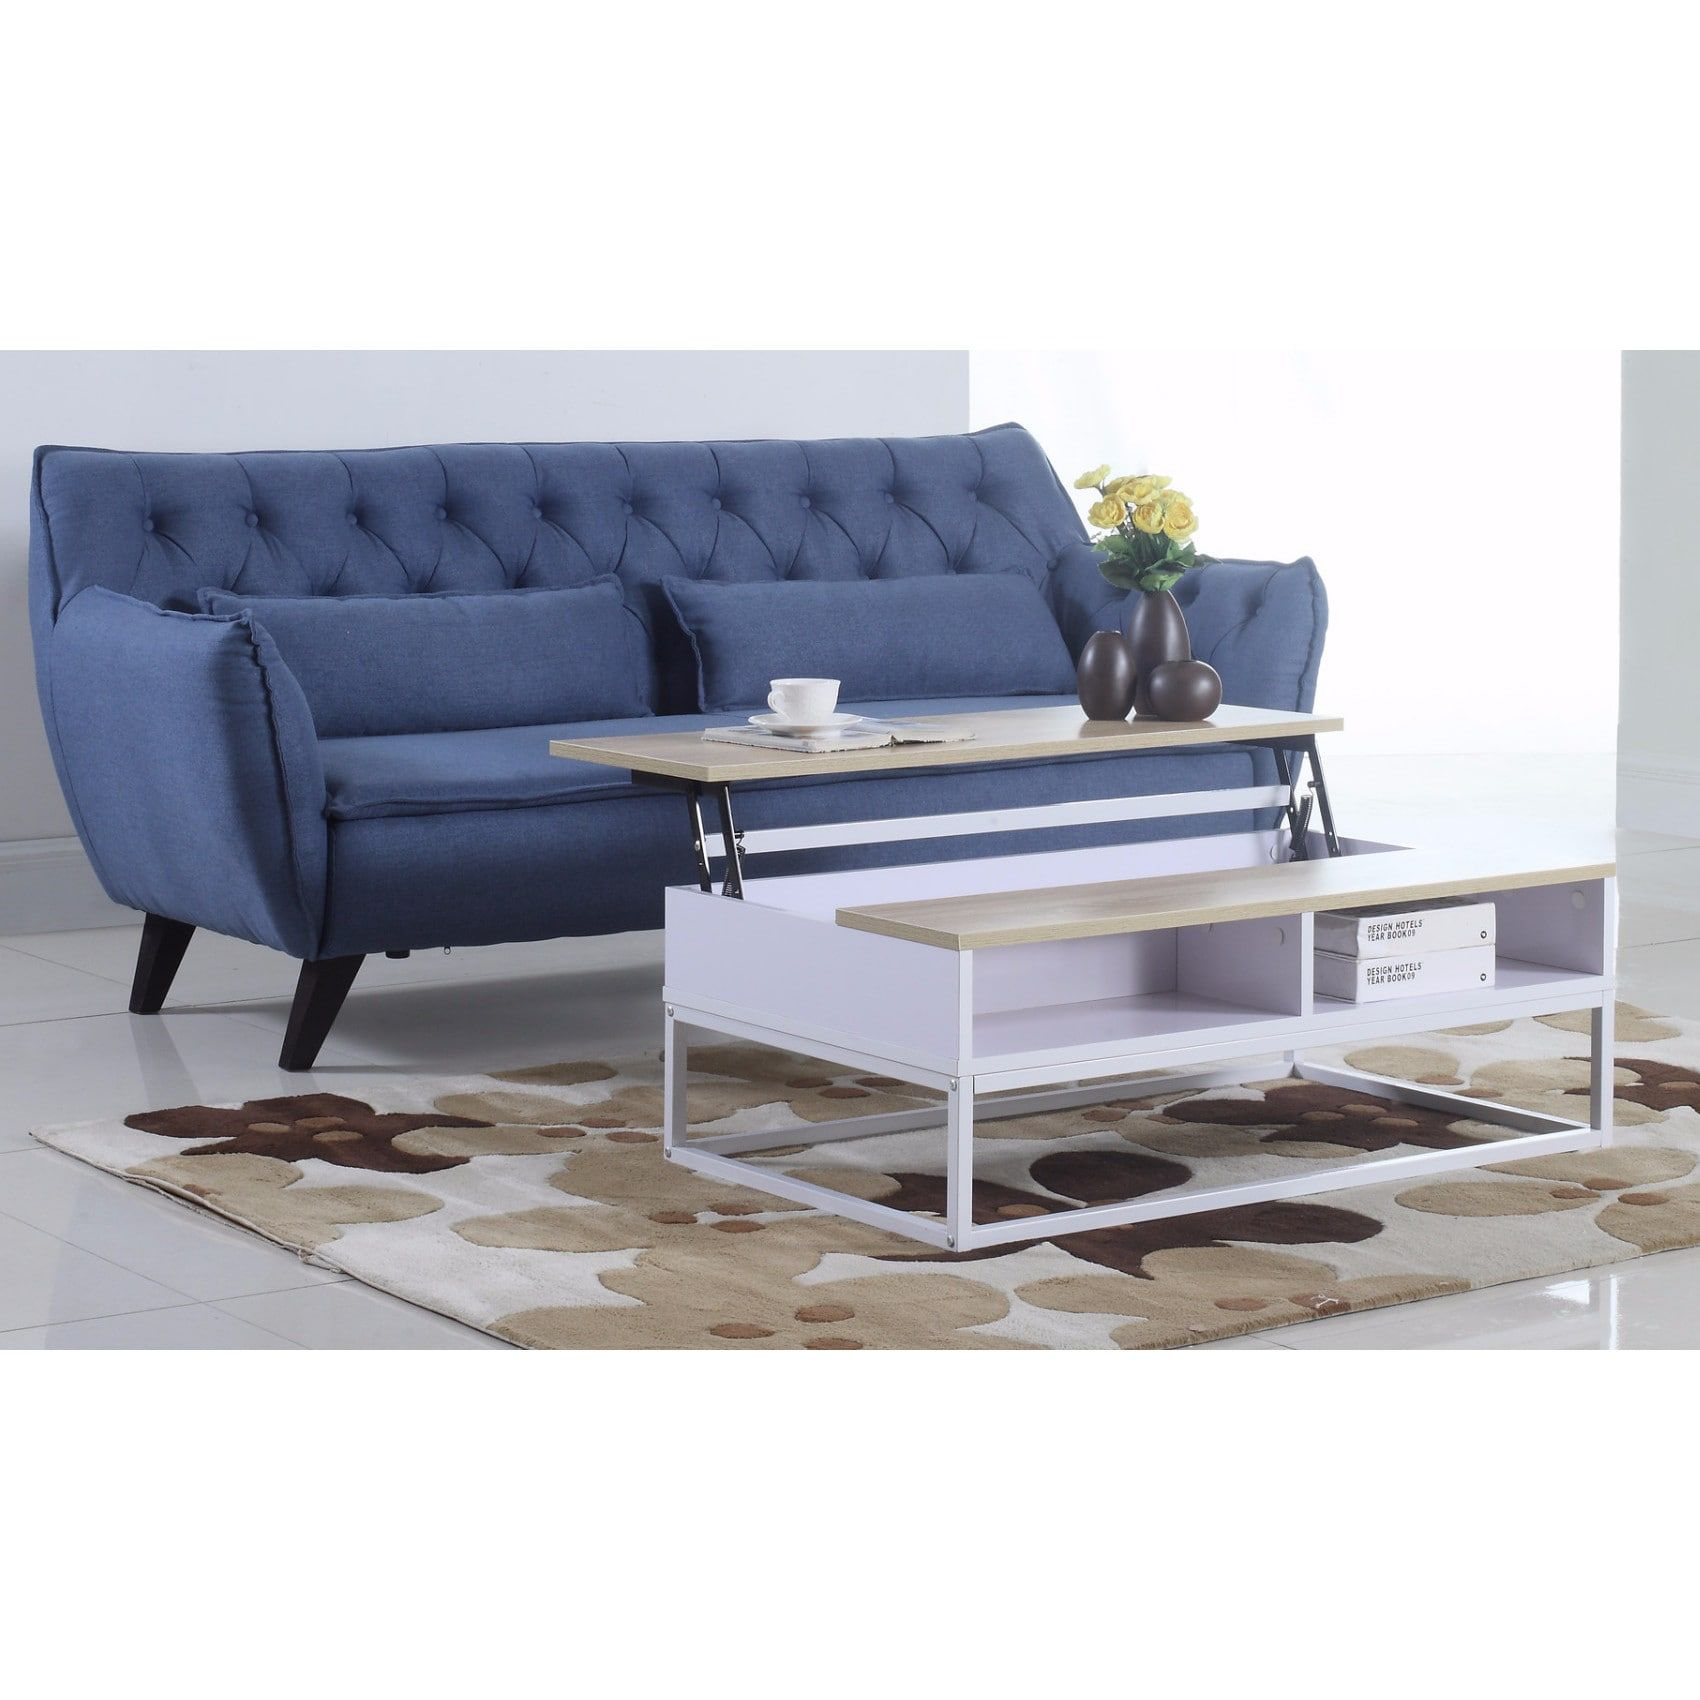 Modern and simply designed lift top coffee table overstock modern and simply designed lift top coffee table overstock shopping the best geotapseo Image collections